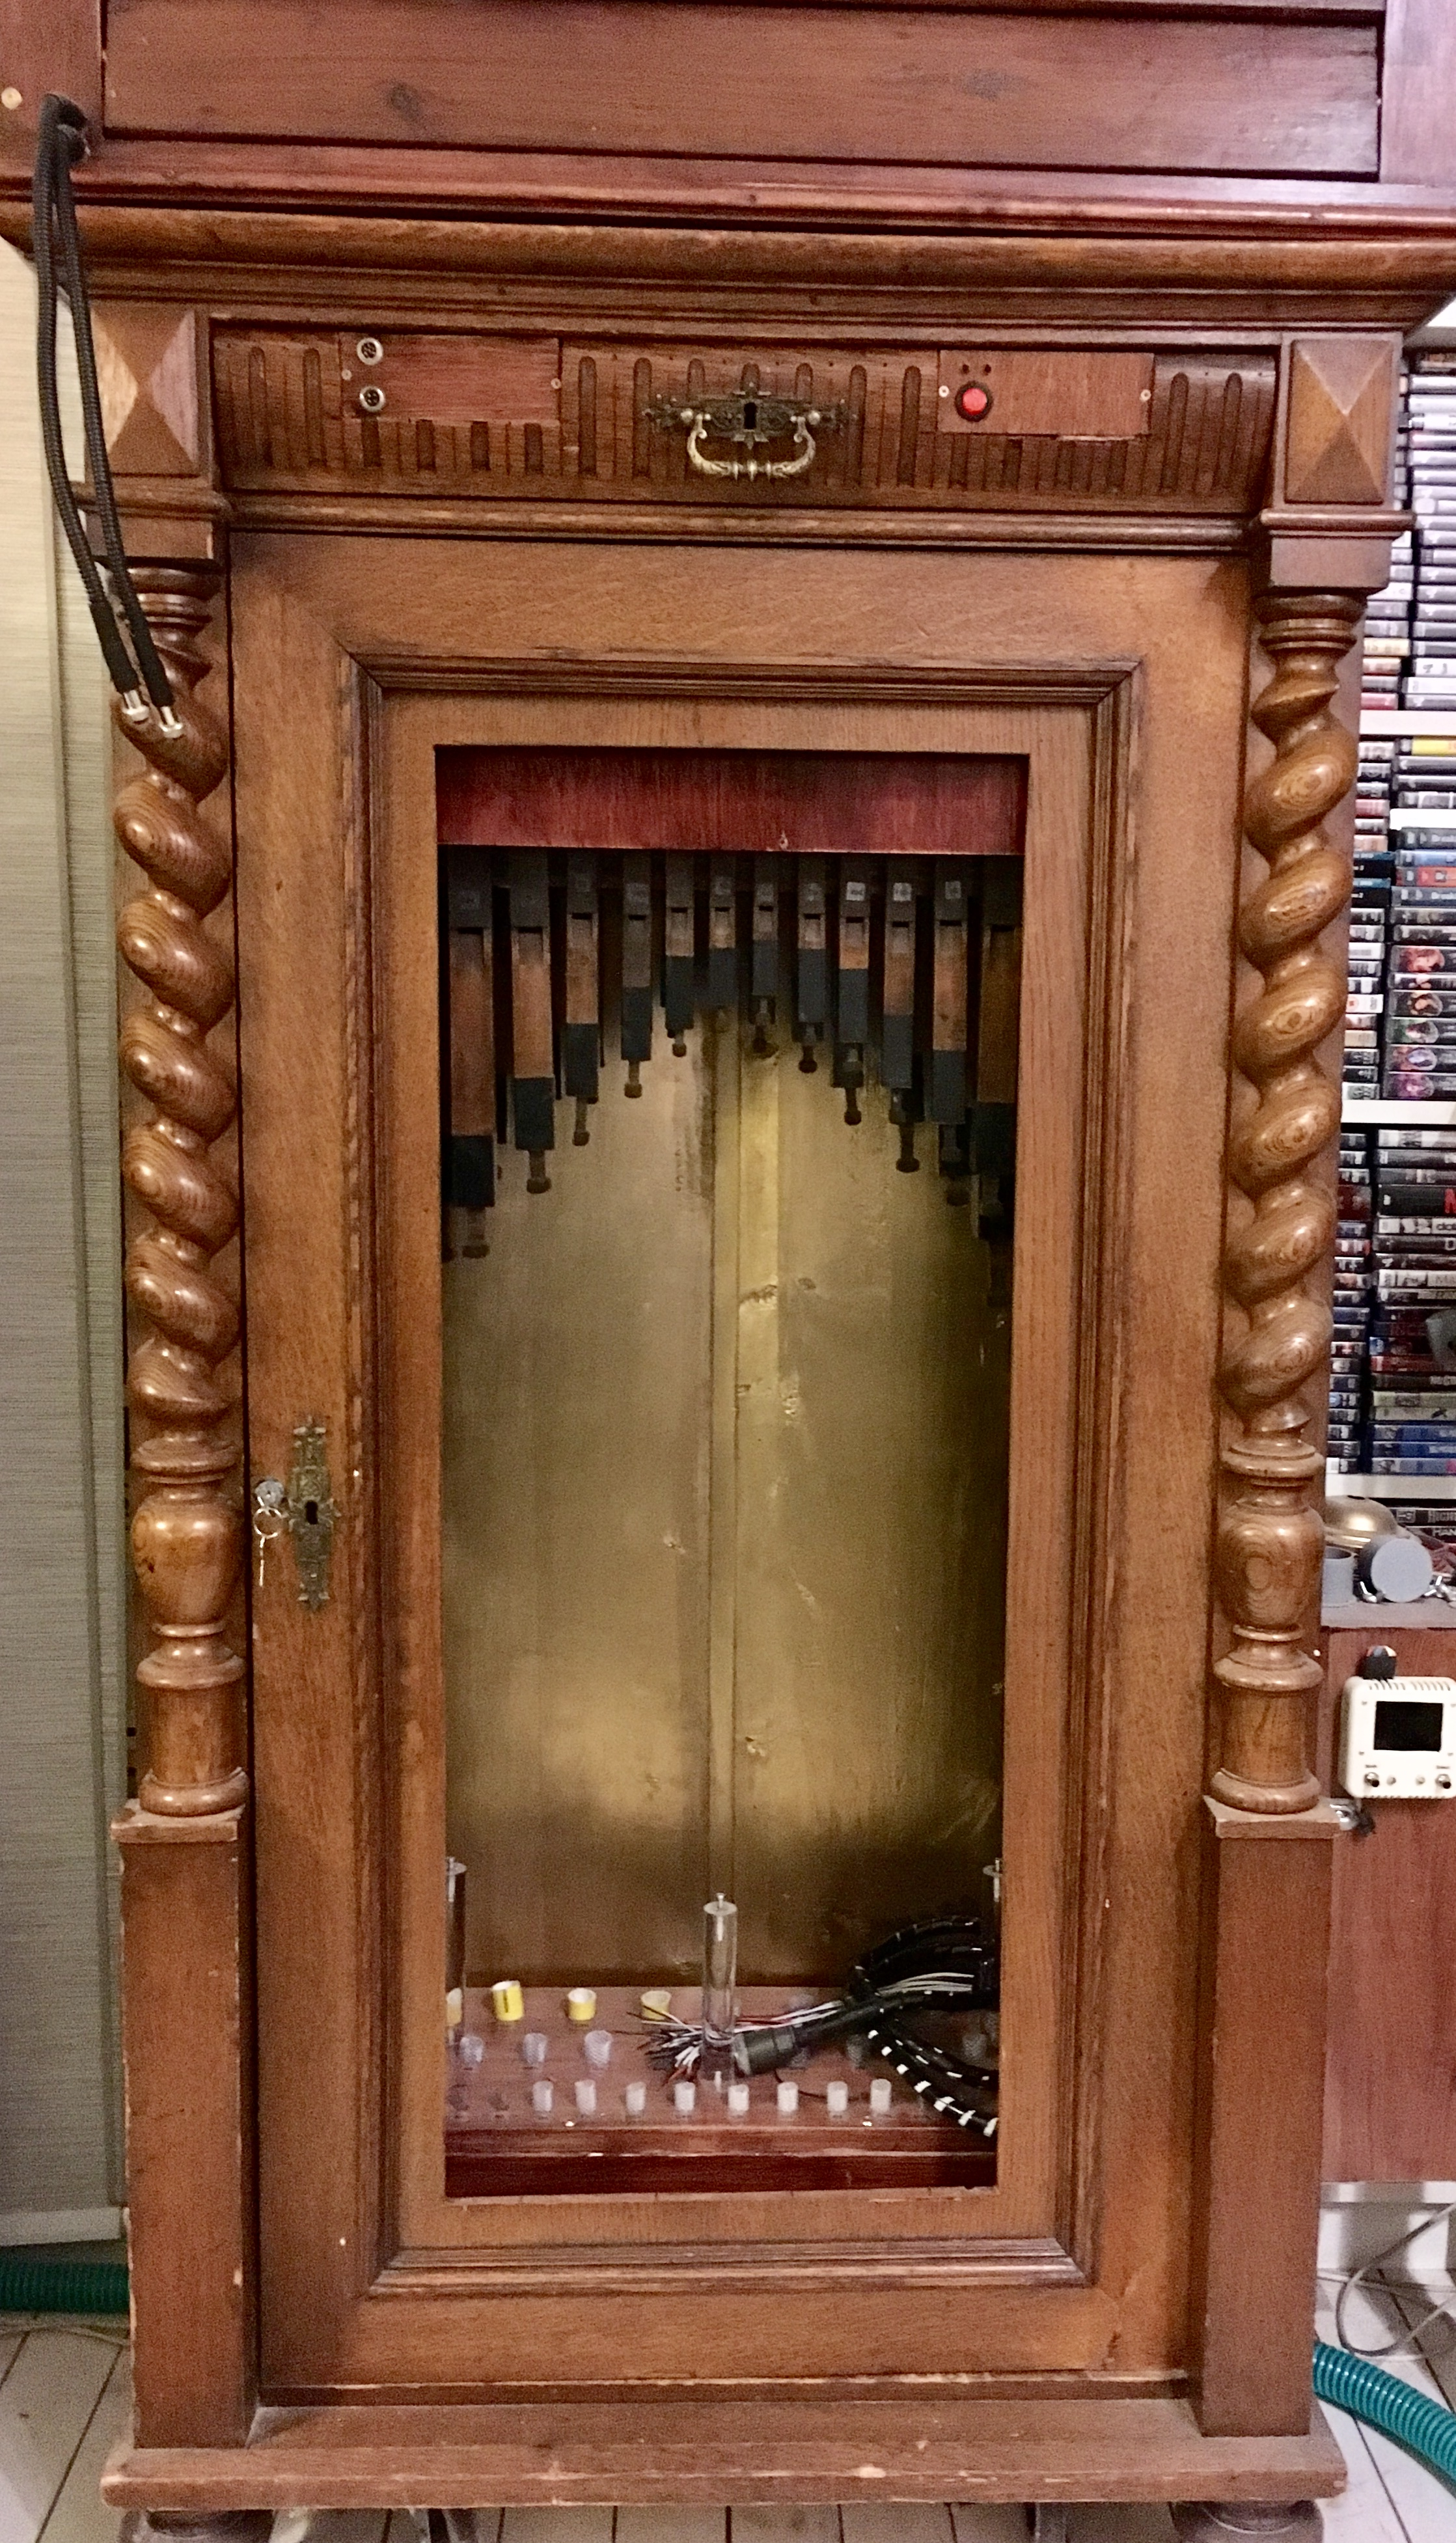 The PipeMare cabinet with the flutes installed